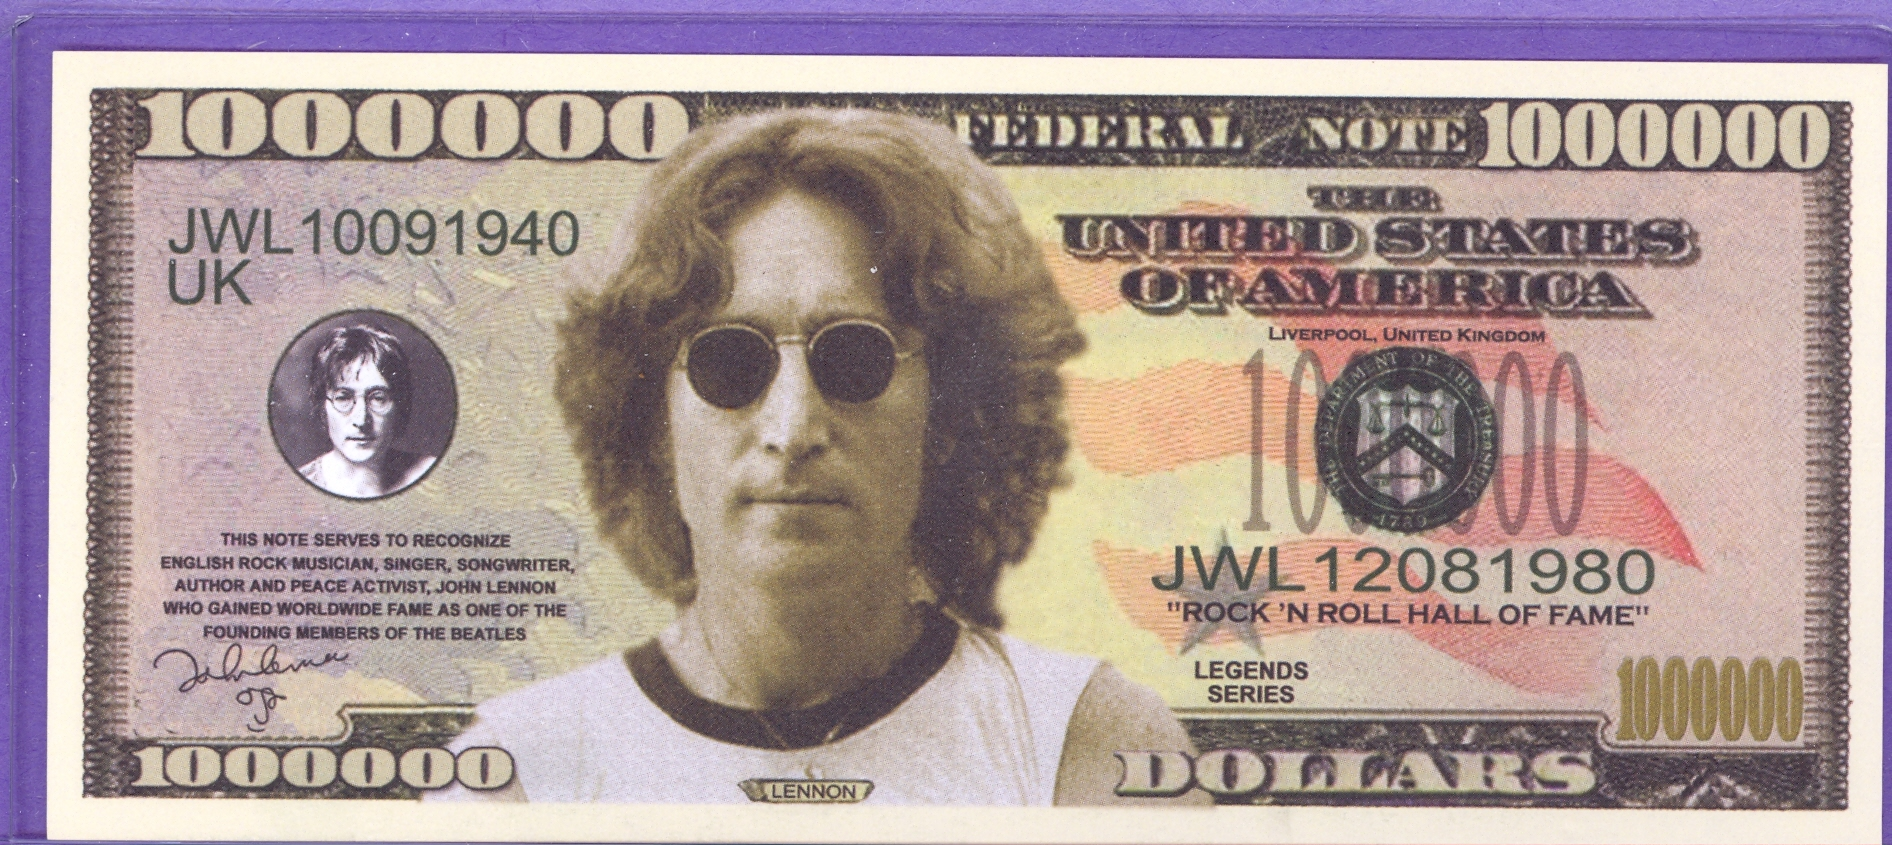 John Lennon Million Dollar Note - The Beatles